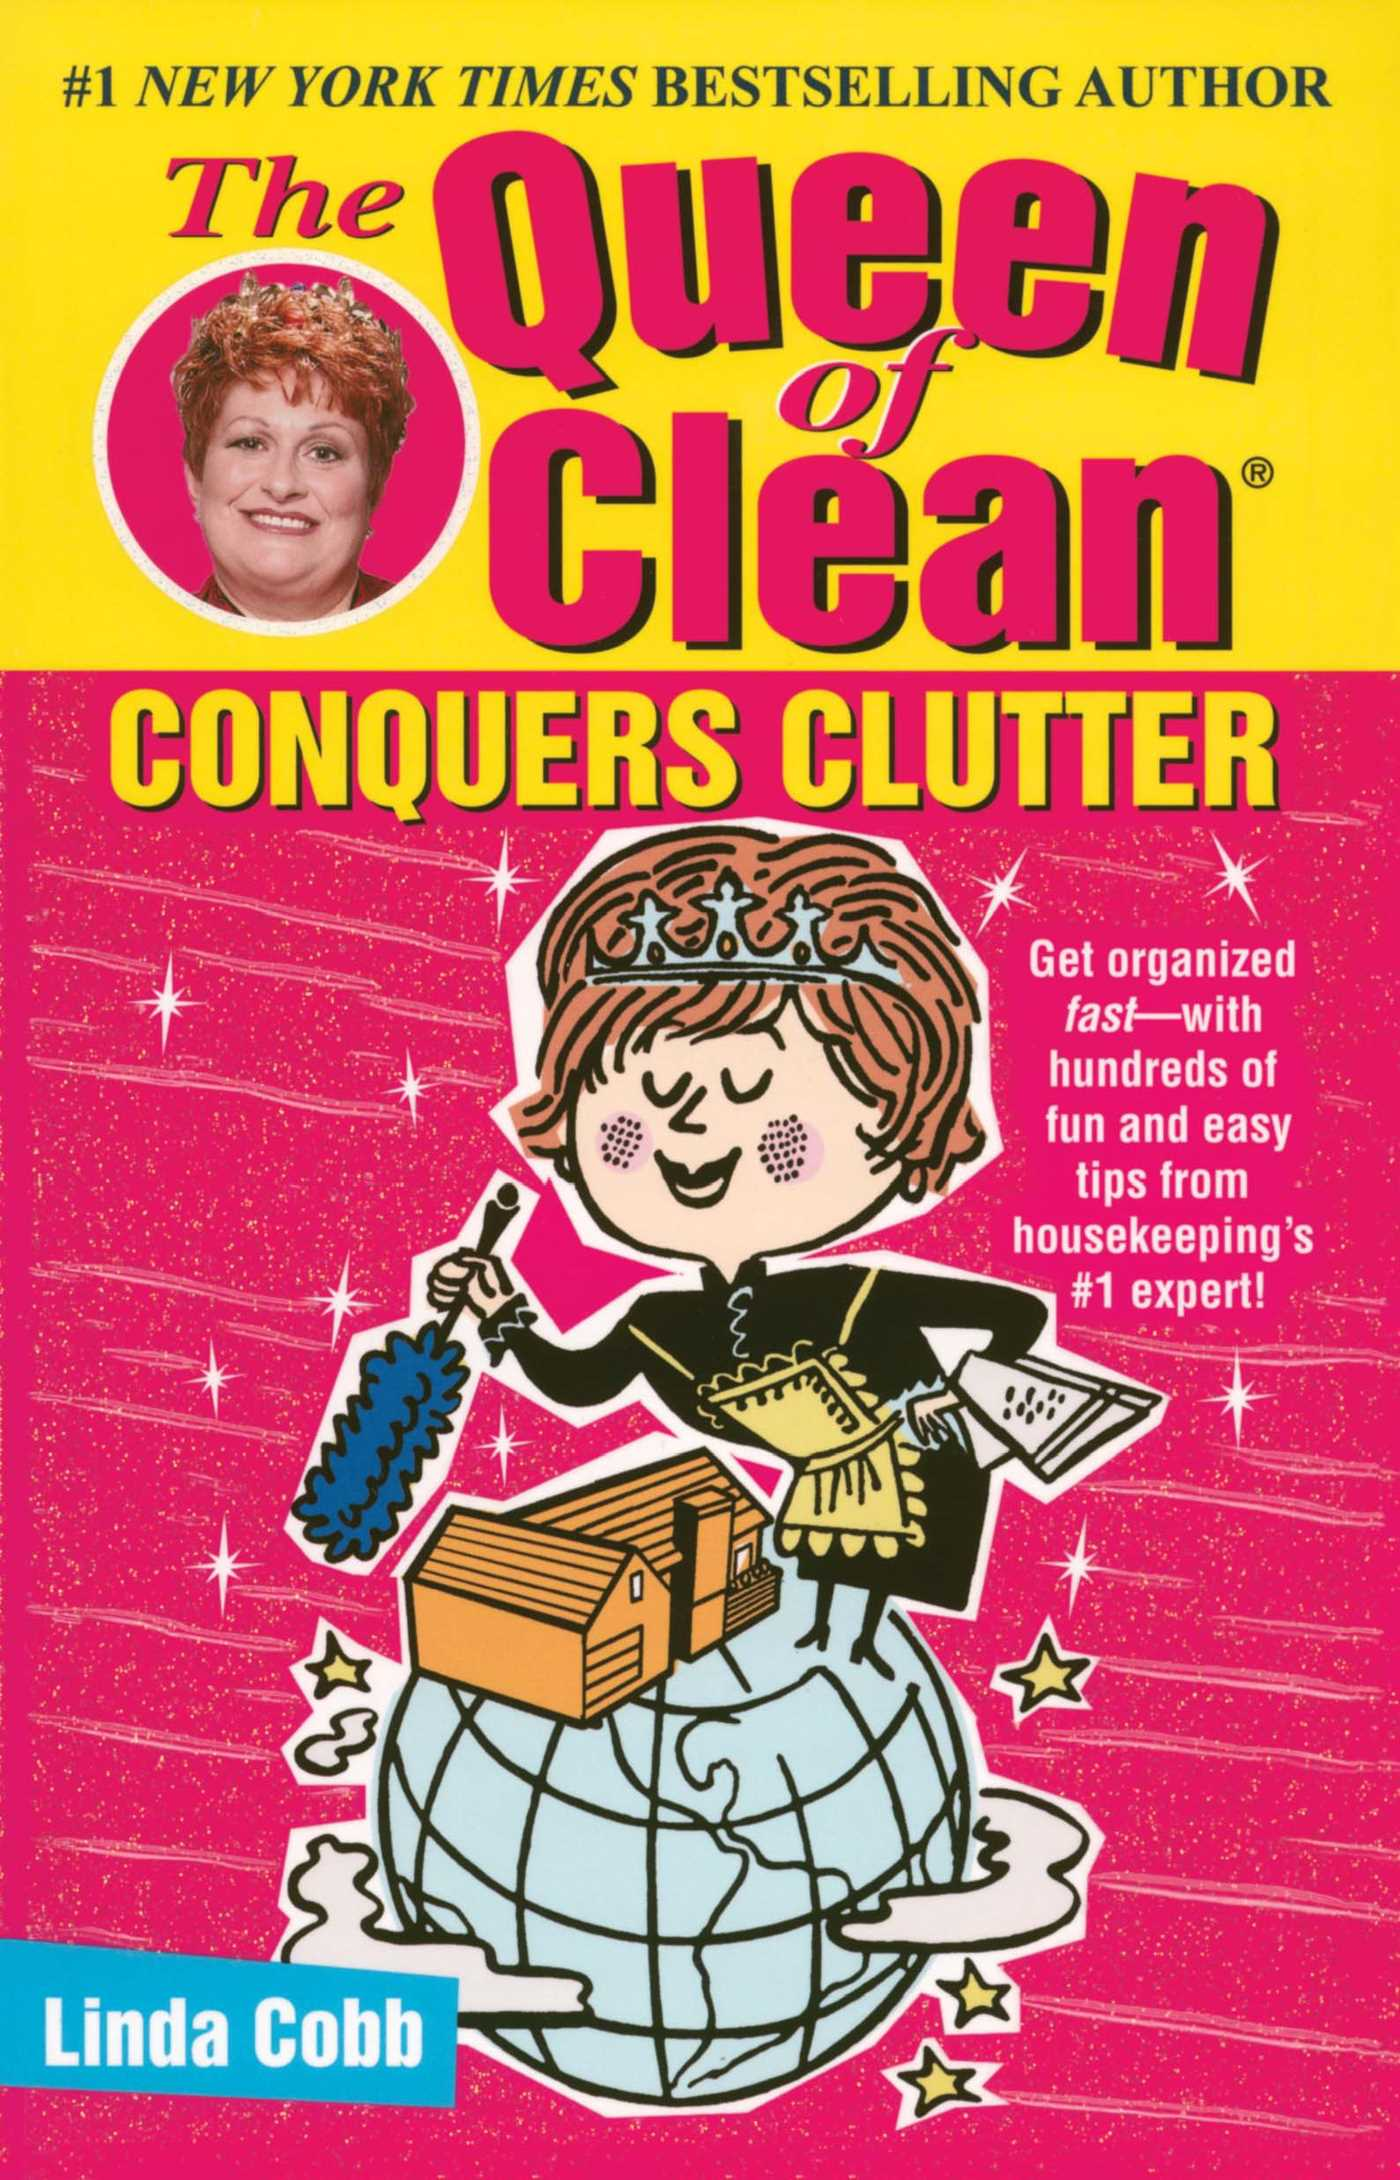 The-queen-of-clean-conquers-clutter-9780743436939_hr